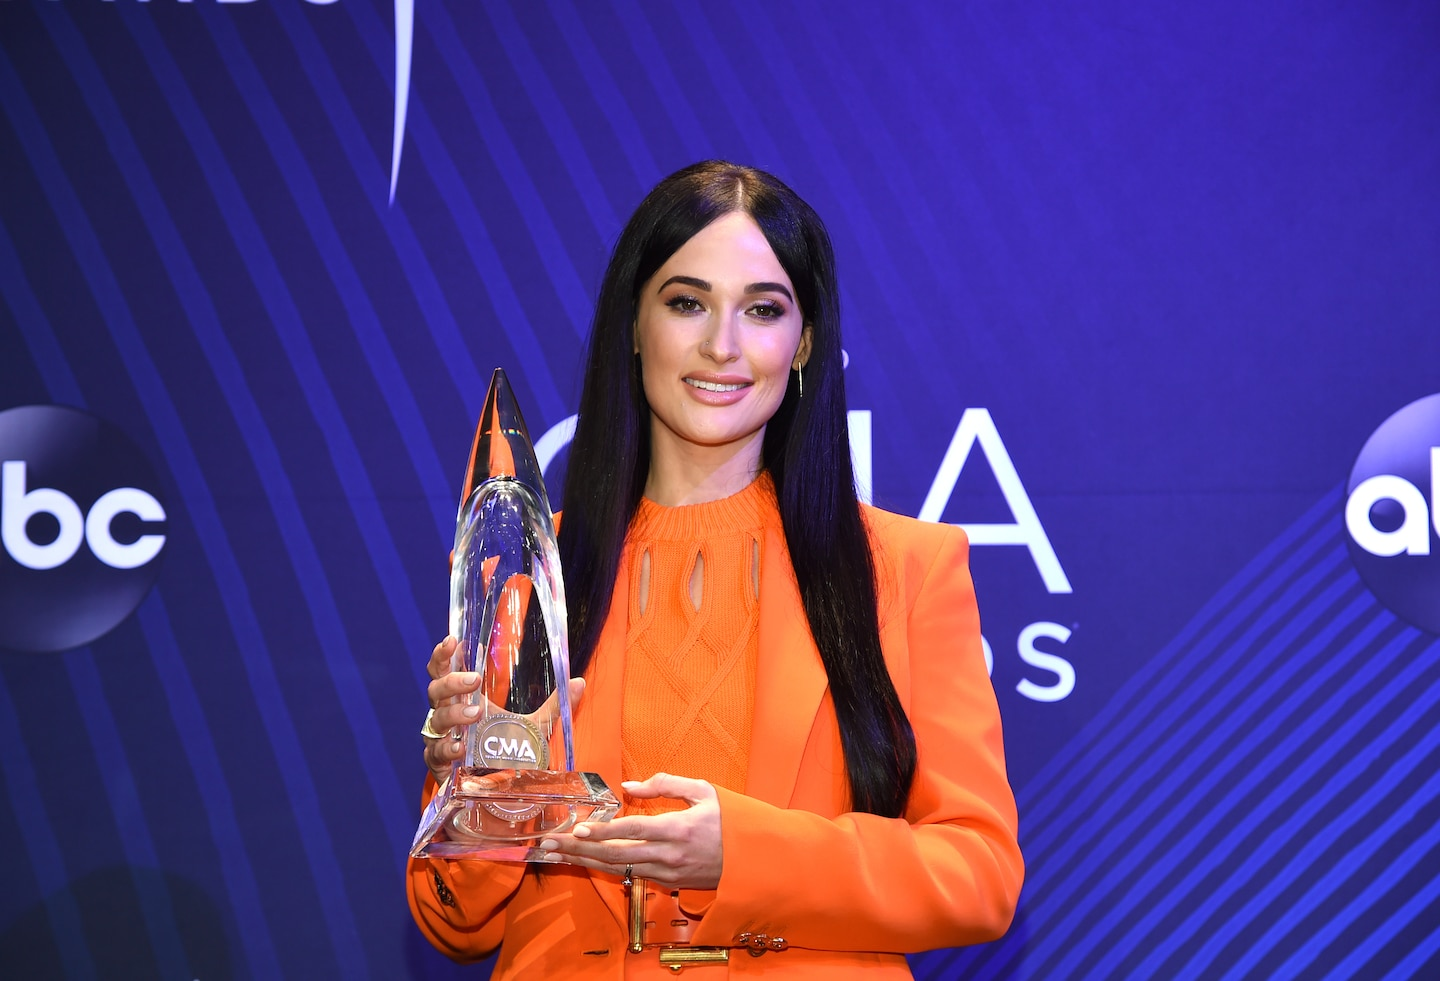 Kacey Musgraves won album of the year at the CMA Awards. Here's why it's a big deal.